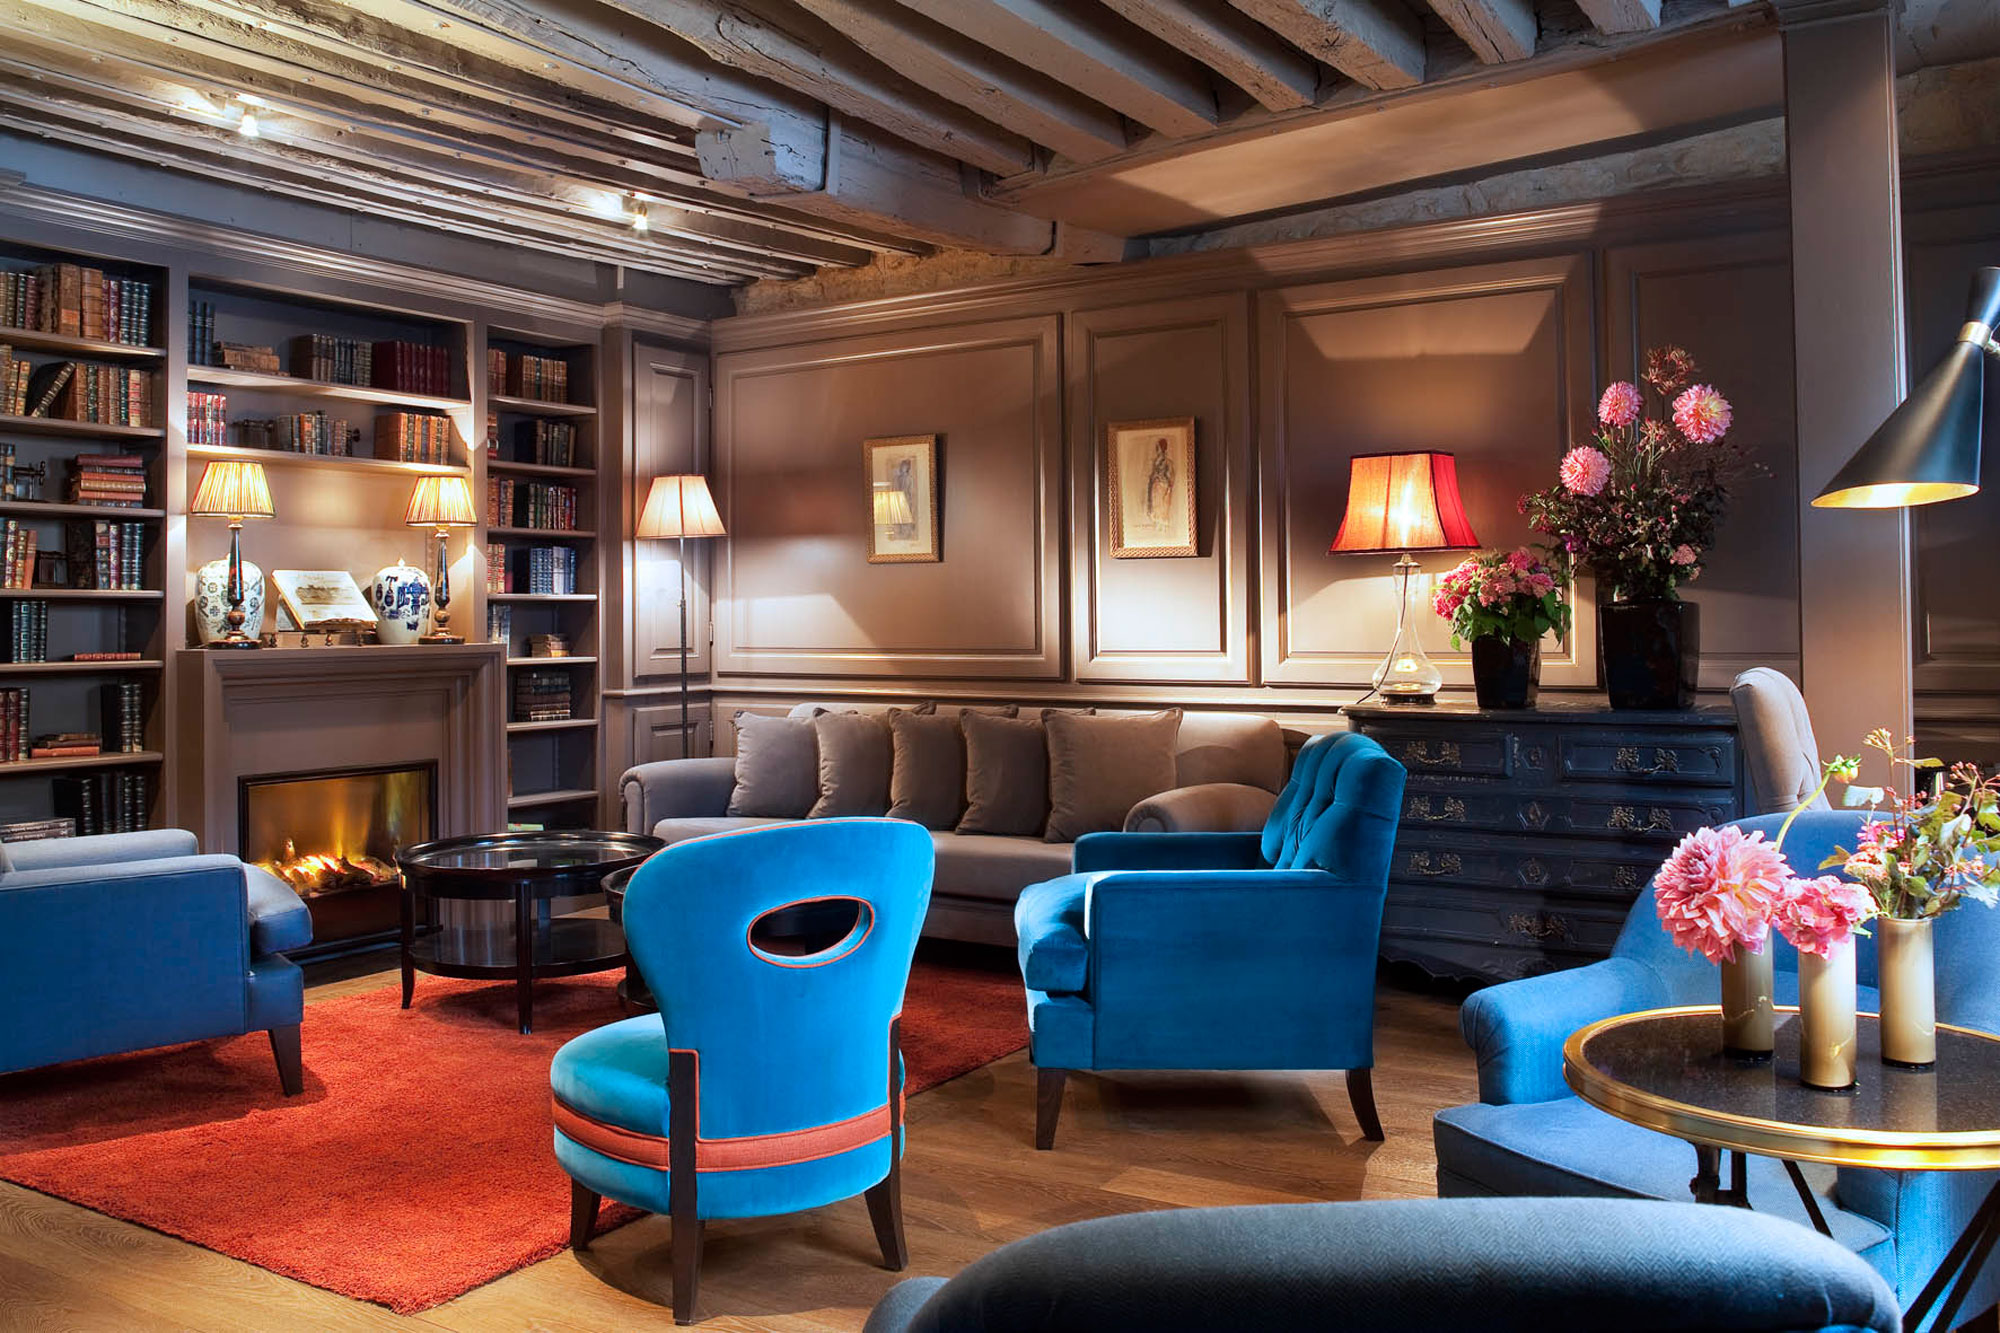 Hotel verneuil one of the best boutique hotels in saint for Paris boutiques hotels